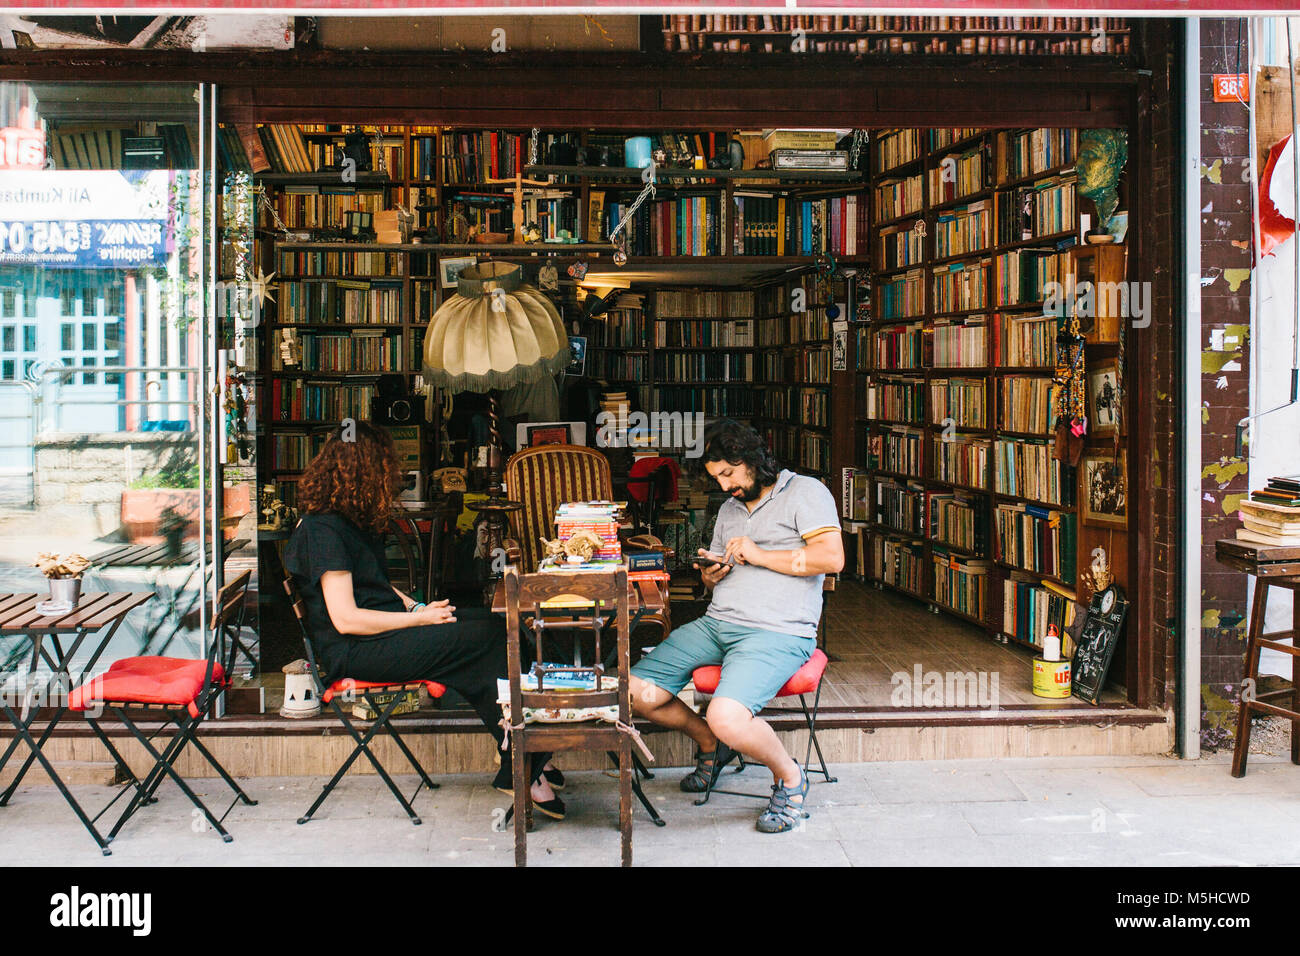 Istanbul, June 14, 2017: Street bookstore in the Asian part of Istanbul in the Kadikoy district. Turkey. The book - Stock Image